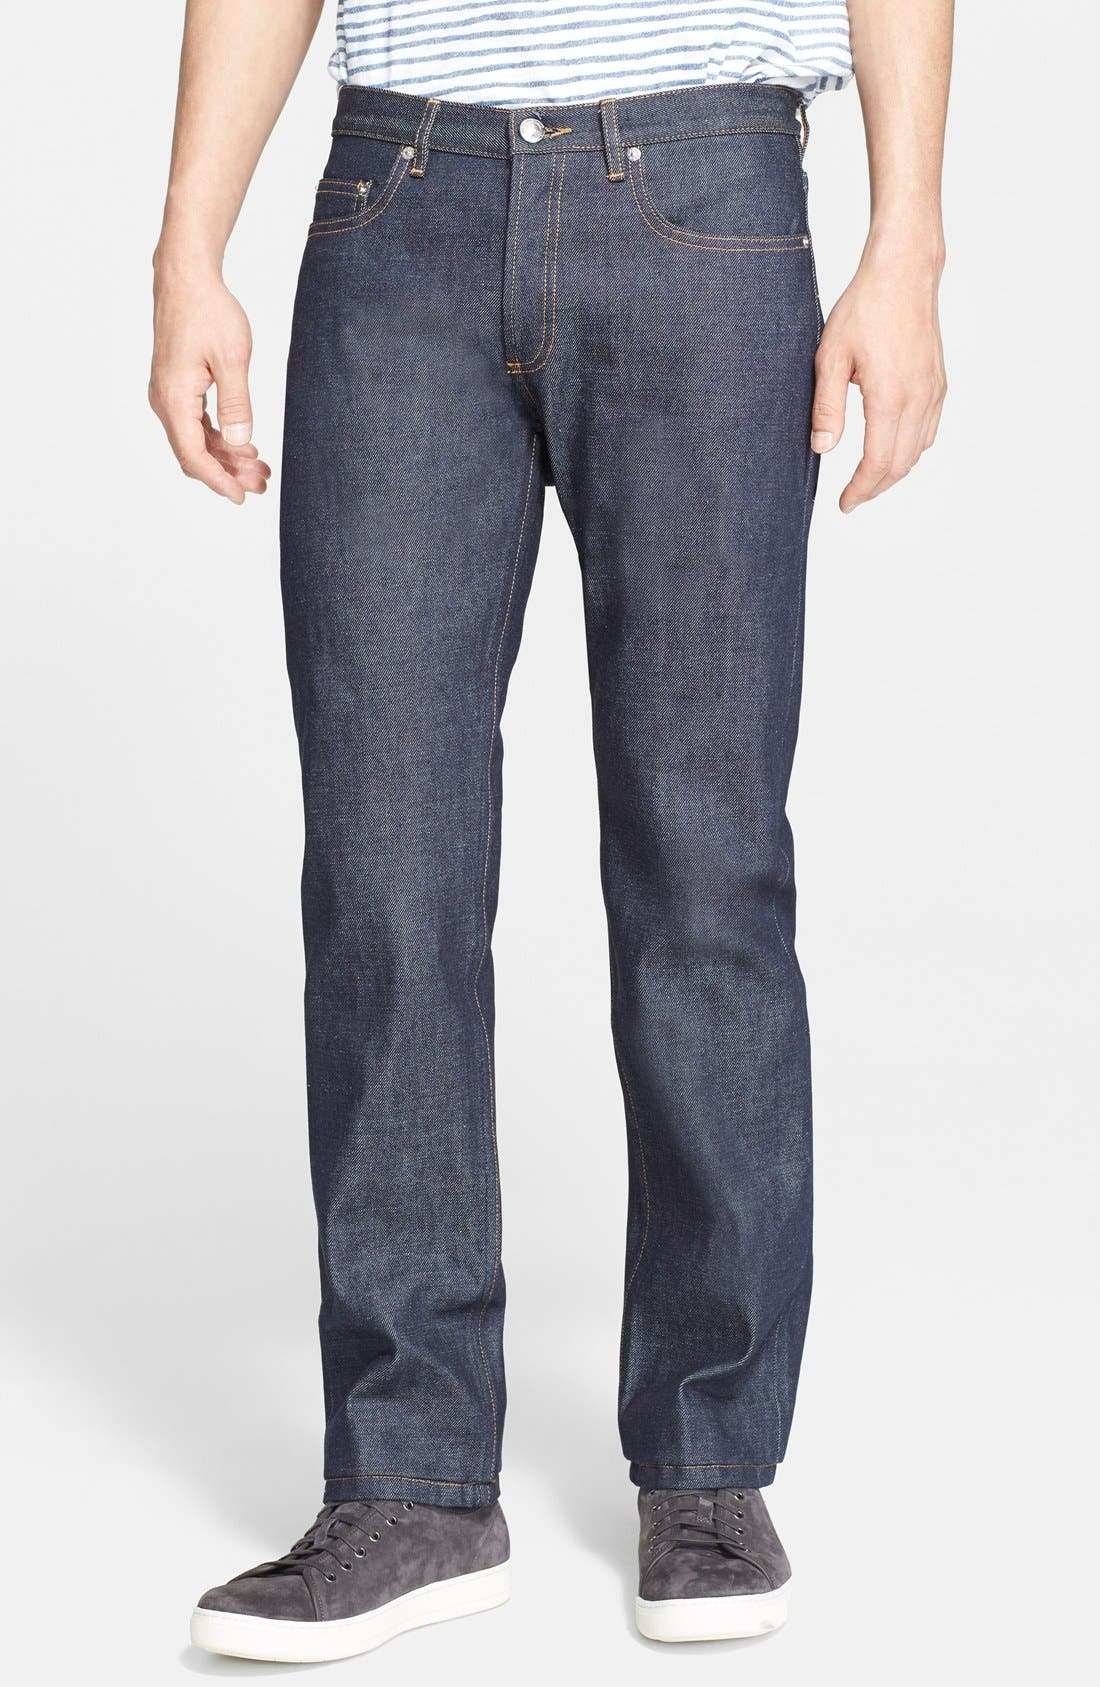 Alternate Image 1 Selected - A.P.C. New Standard Slim Straight Leg Selvedge Jeans (Indigo)